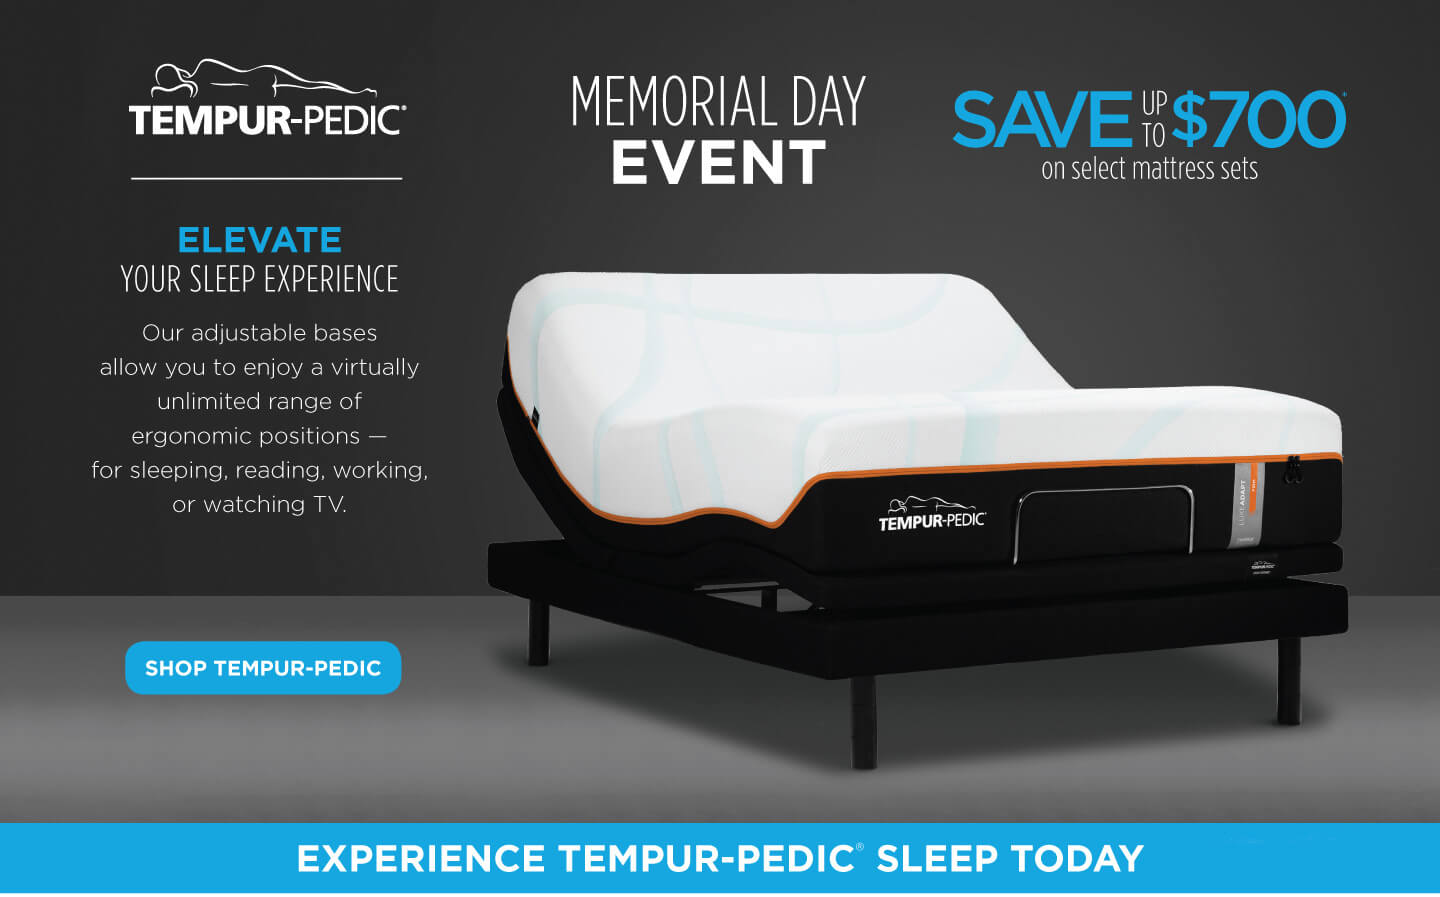 Tempur-Pedic Memorial Day Event